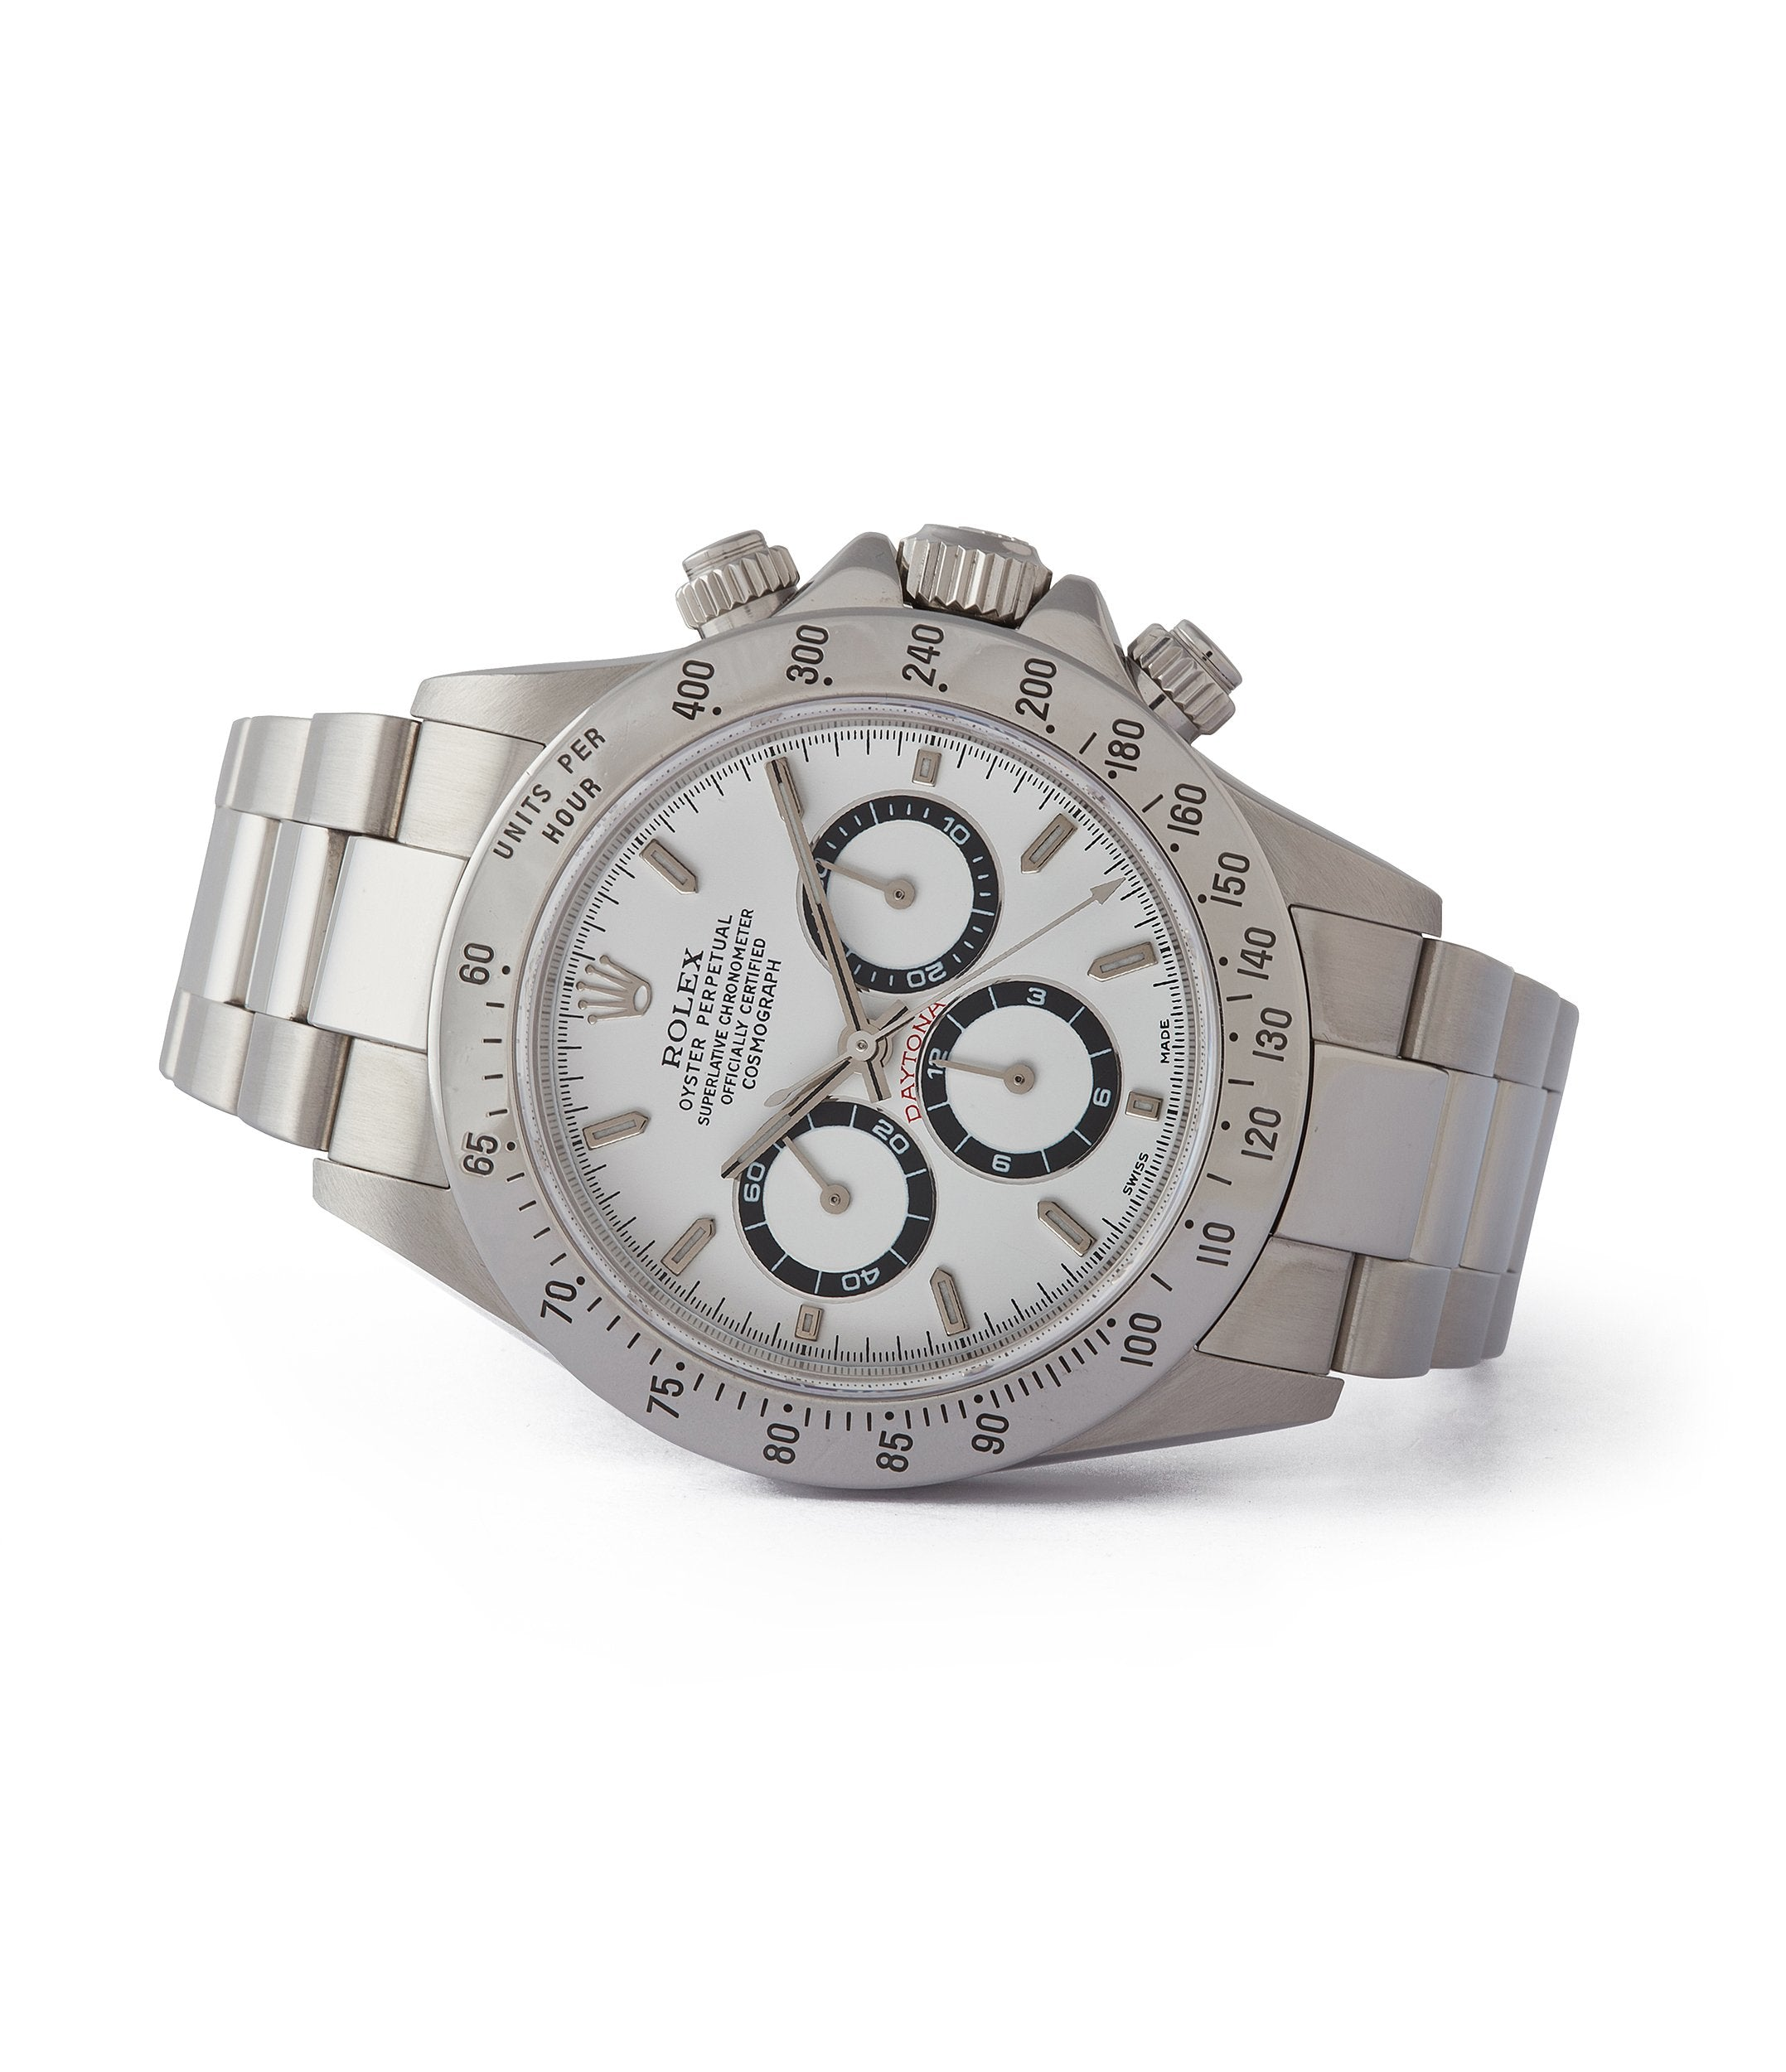 side-shot rare white dial Rolex Daytona 16520 Zenith steel vintage chronograph sports watch full set for sale online A Collected Man London specialist rare watches